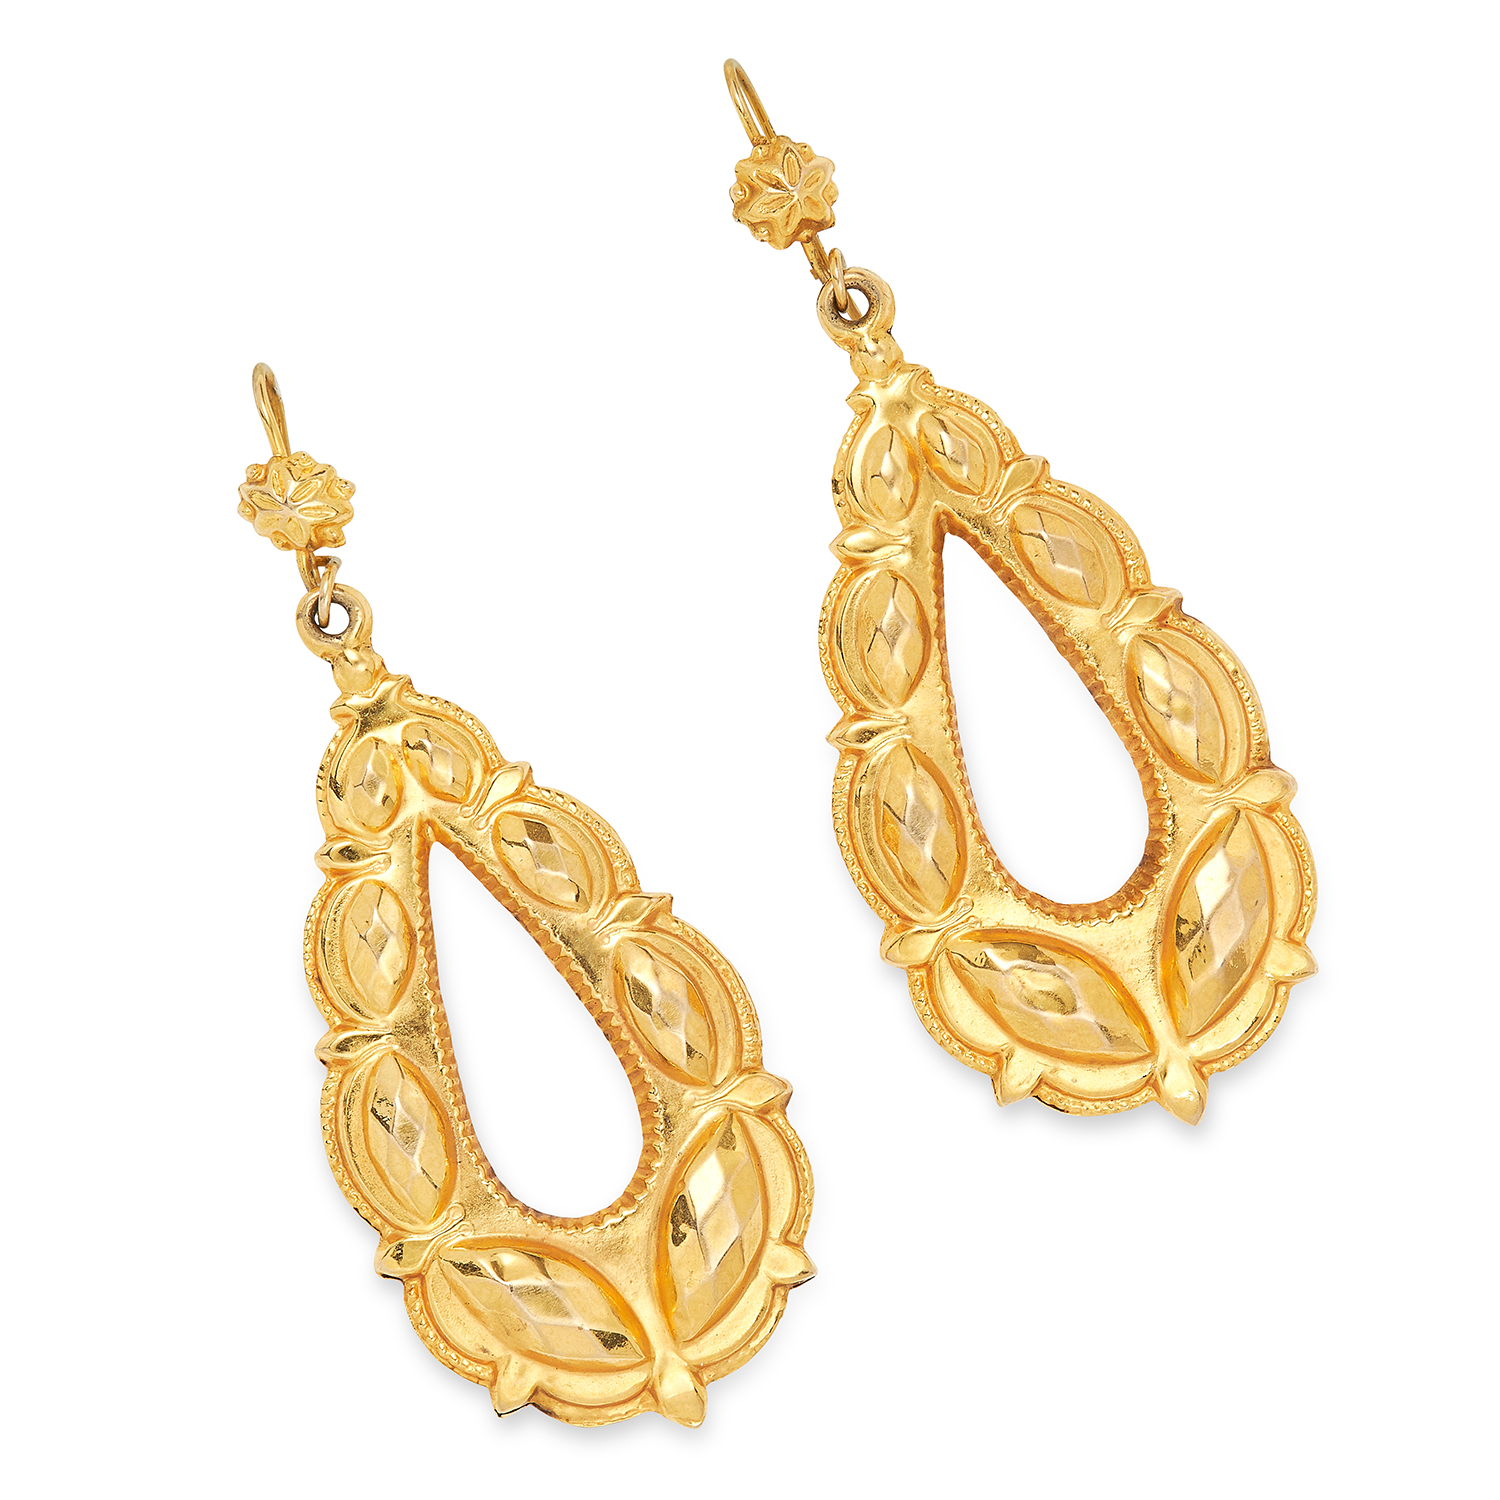 Los 24 - ANTIQUE GOLD EARRINGS set with open textured pear shape gold drops, 5.6cm, 3.7g.